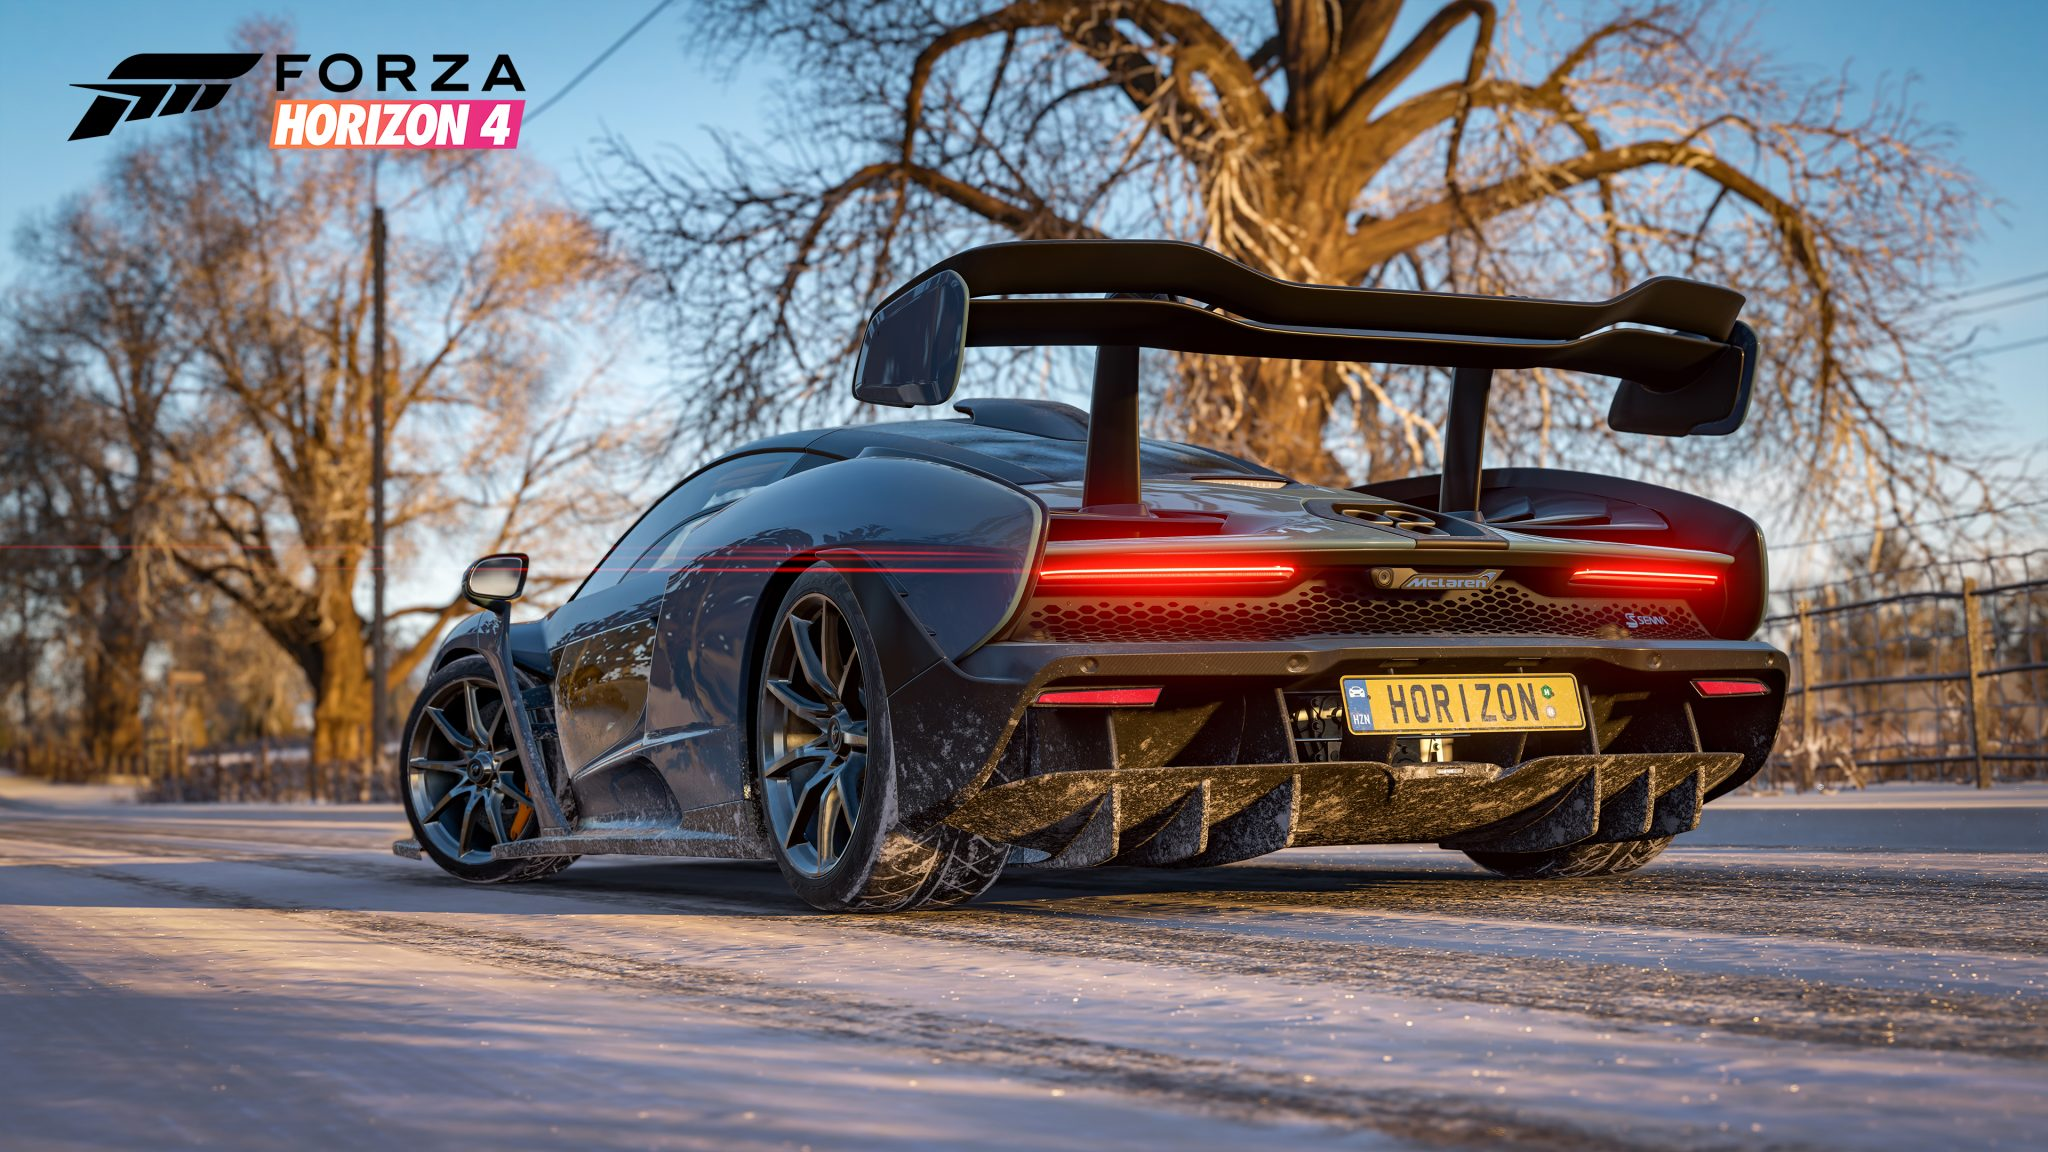 Forza Horizon 4 FH4 Xbox One X PC Ultimate Review Test Kritik Senna